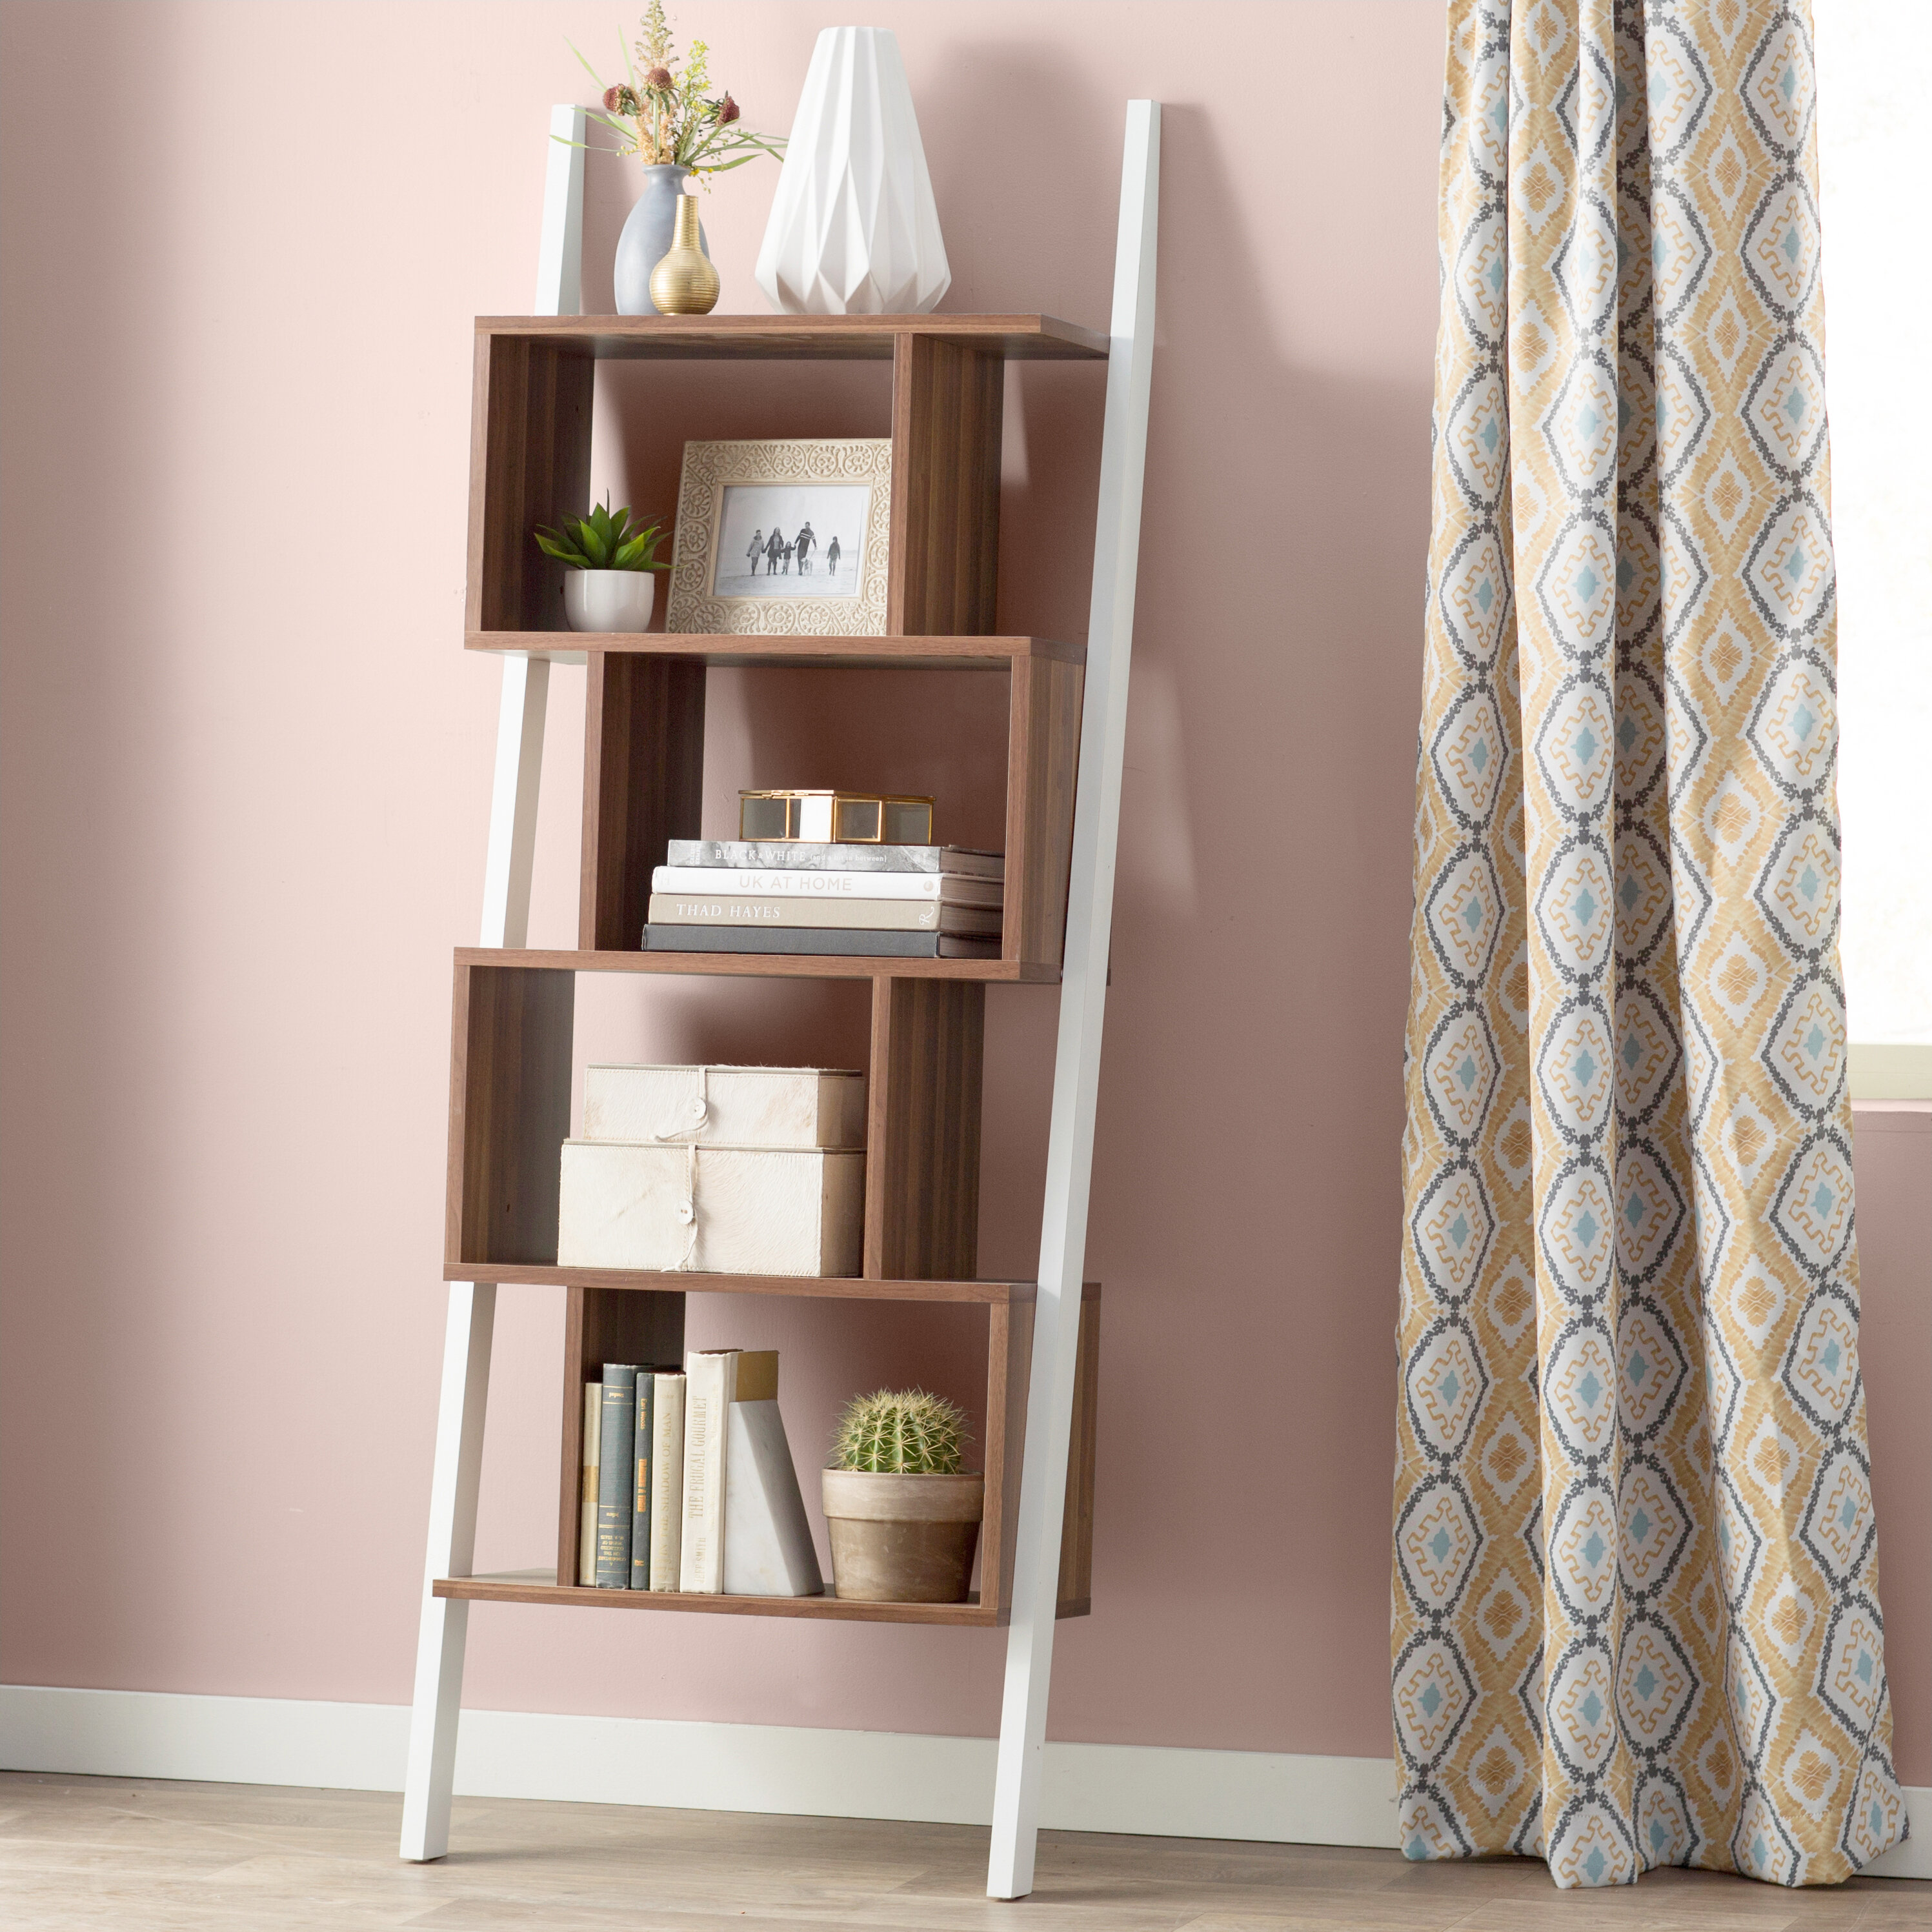 furniture ladder product the leaning shelf beach img